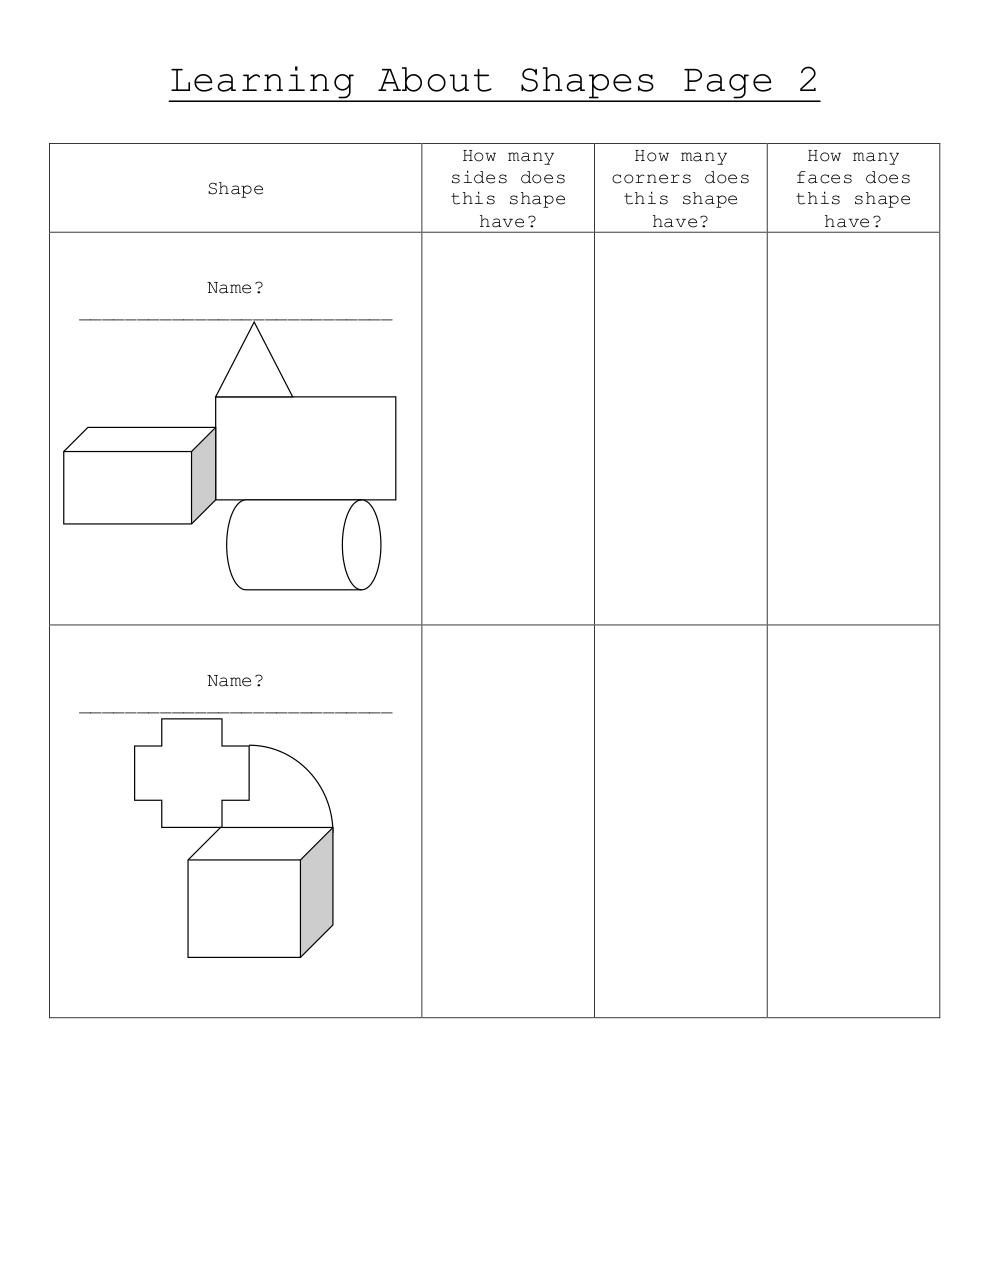 Learning About Shapes Worksheet.pdf - page 2/2